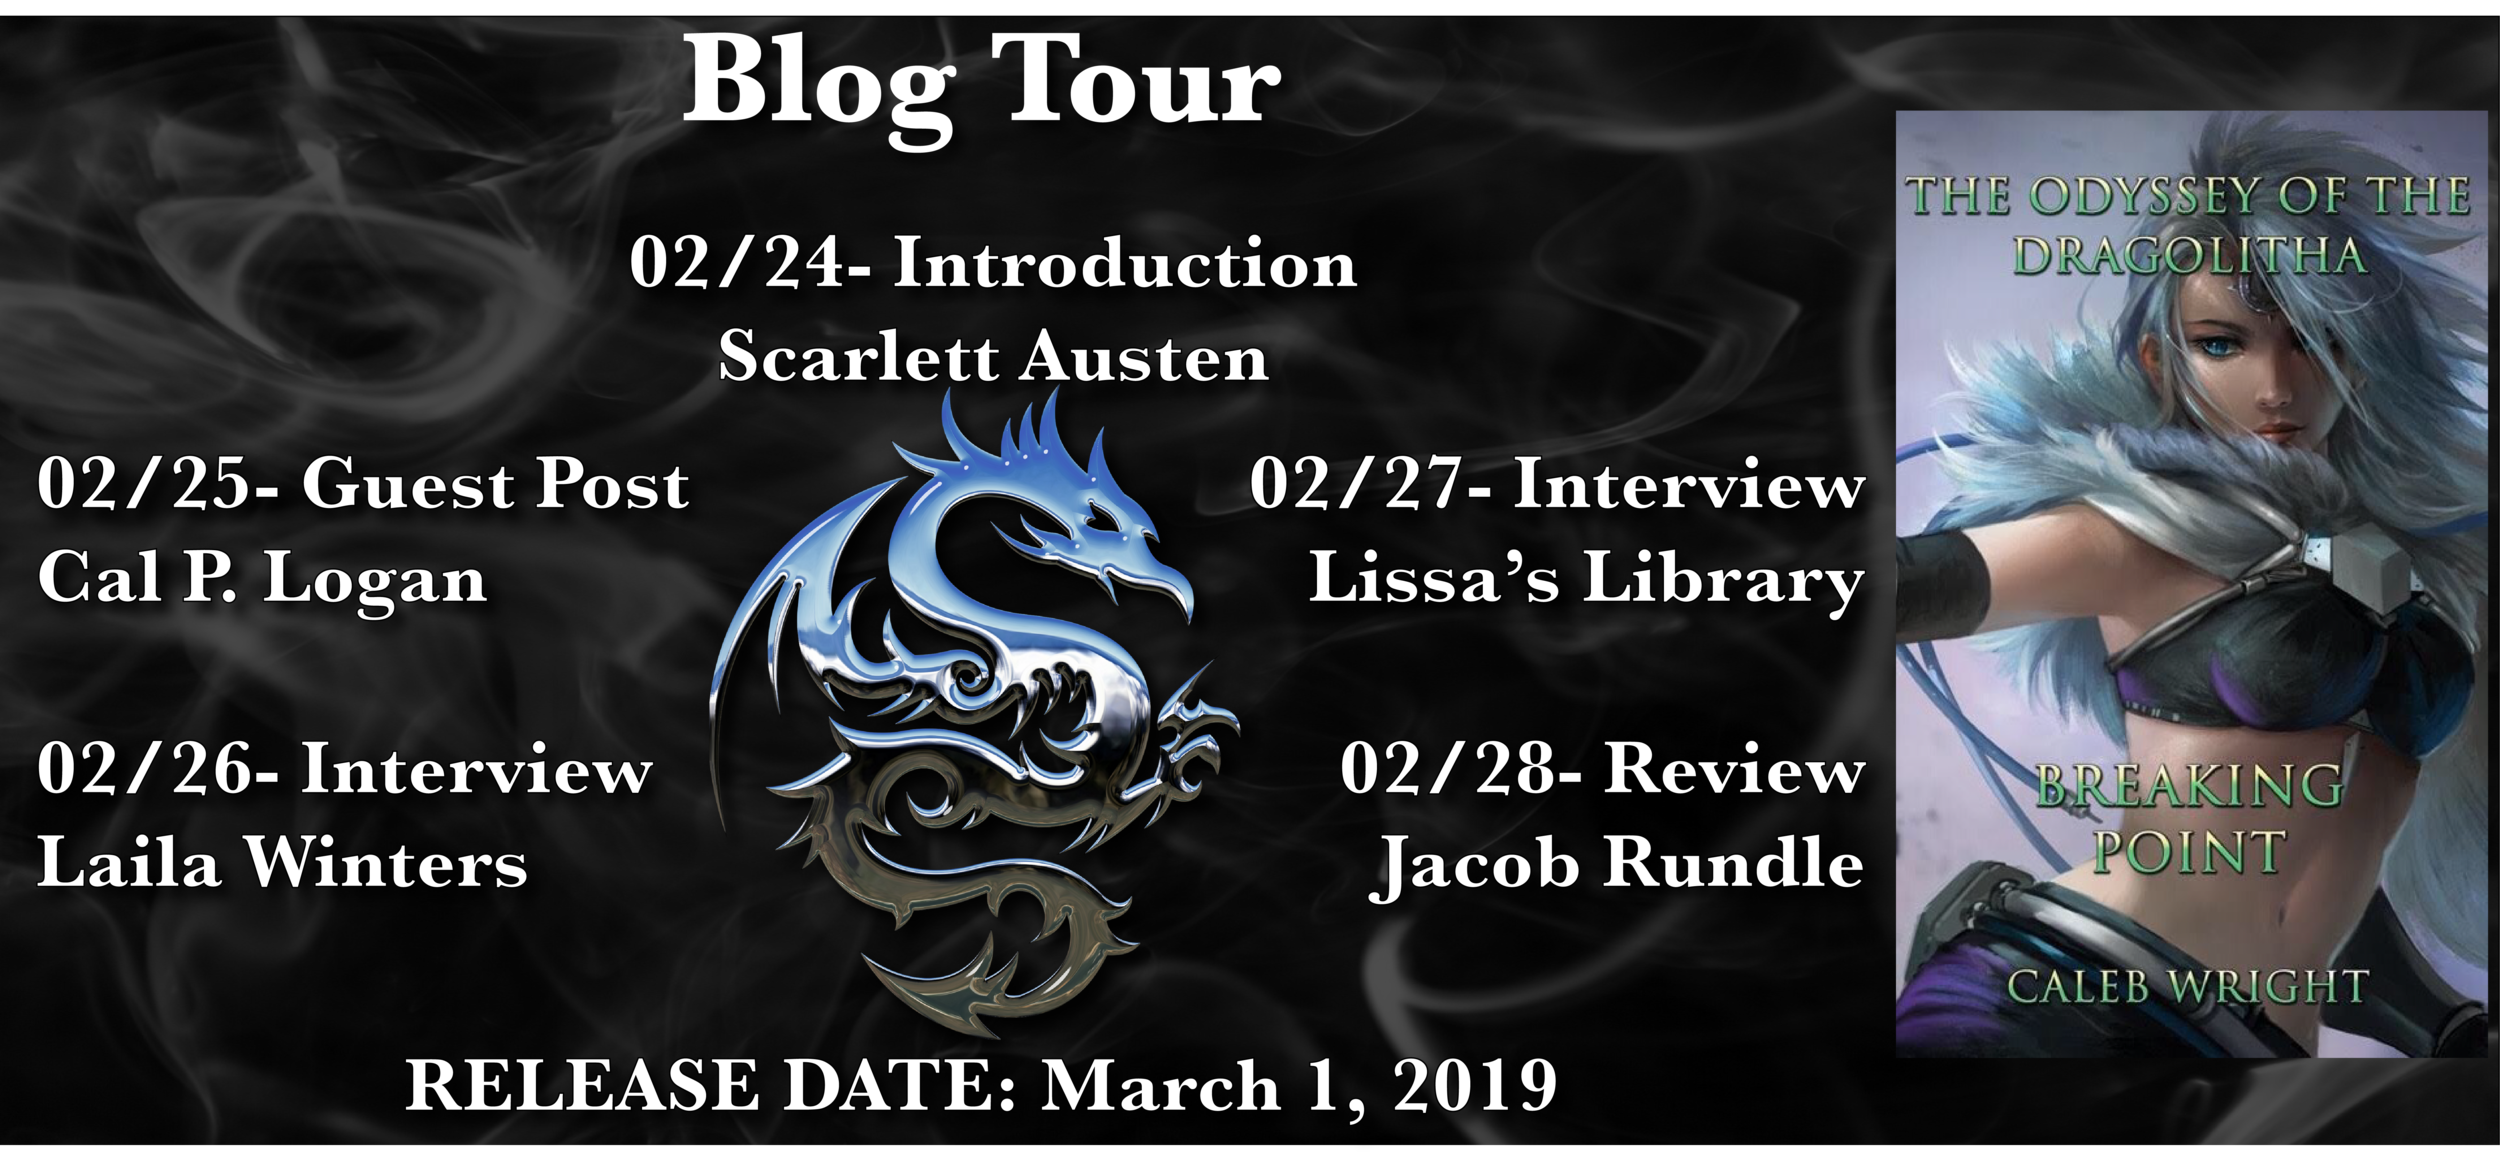 Breaking Point Blog Tour.png